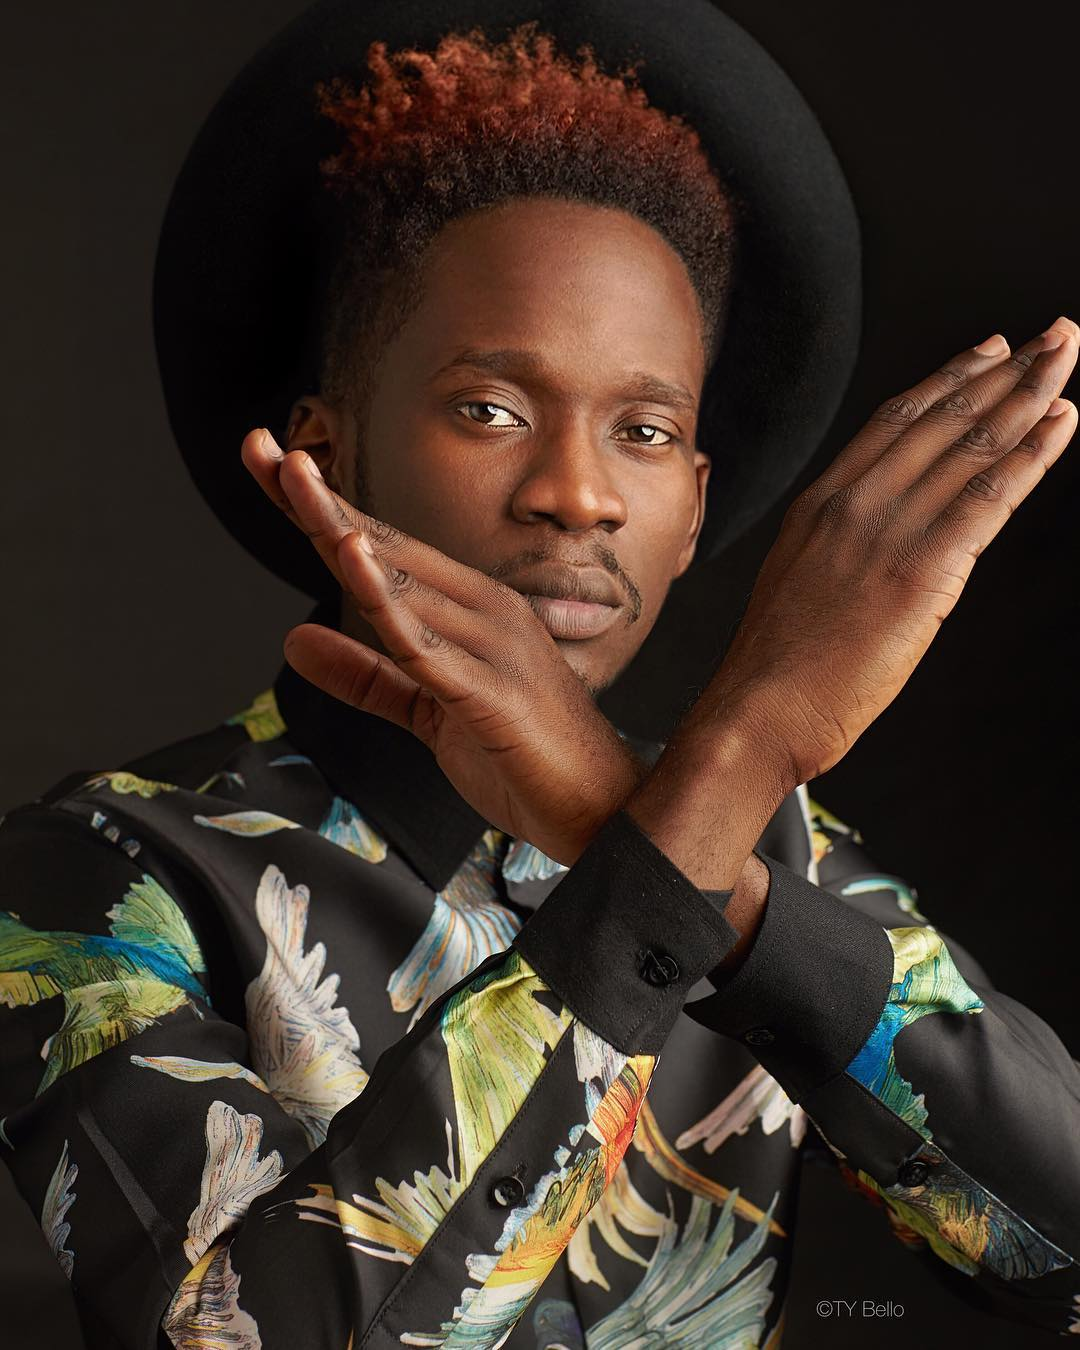 """No musician in Africa can claim that he paid me for doing a song with him. It is my policy not to charge fees for collaborating with fellow artistes on the continent"" – Mr Eazi"